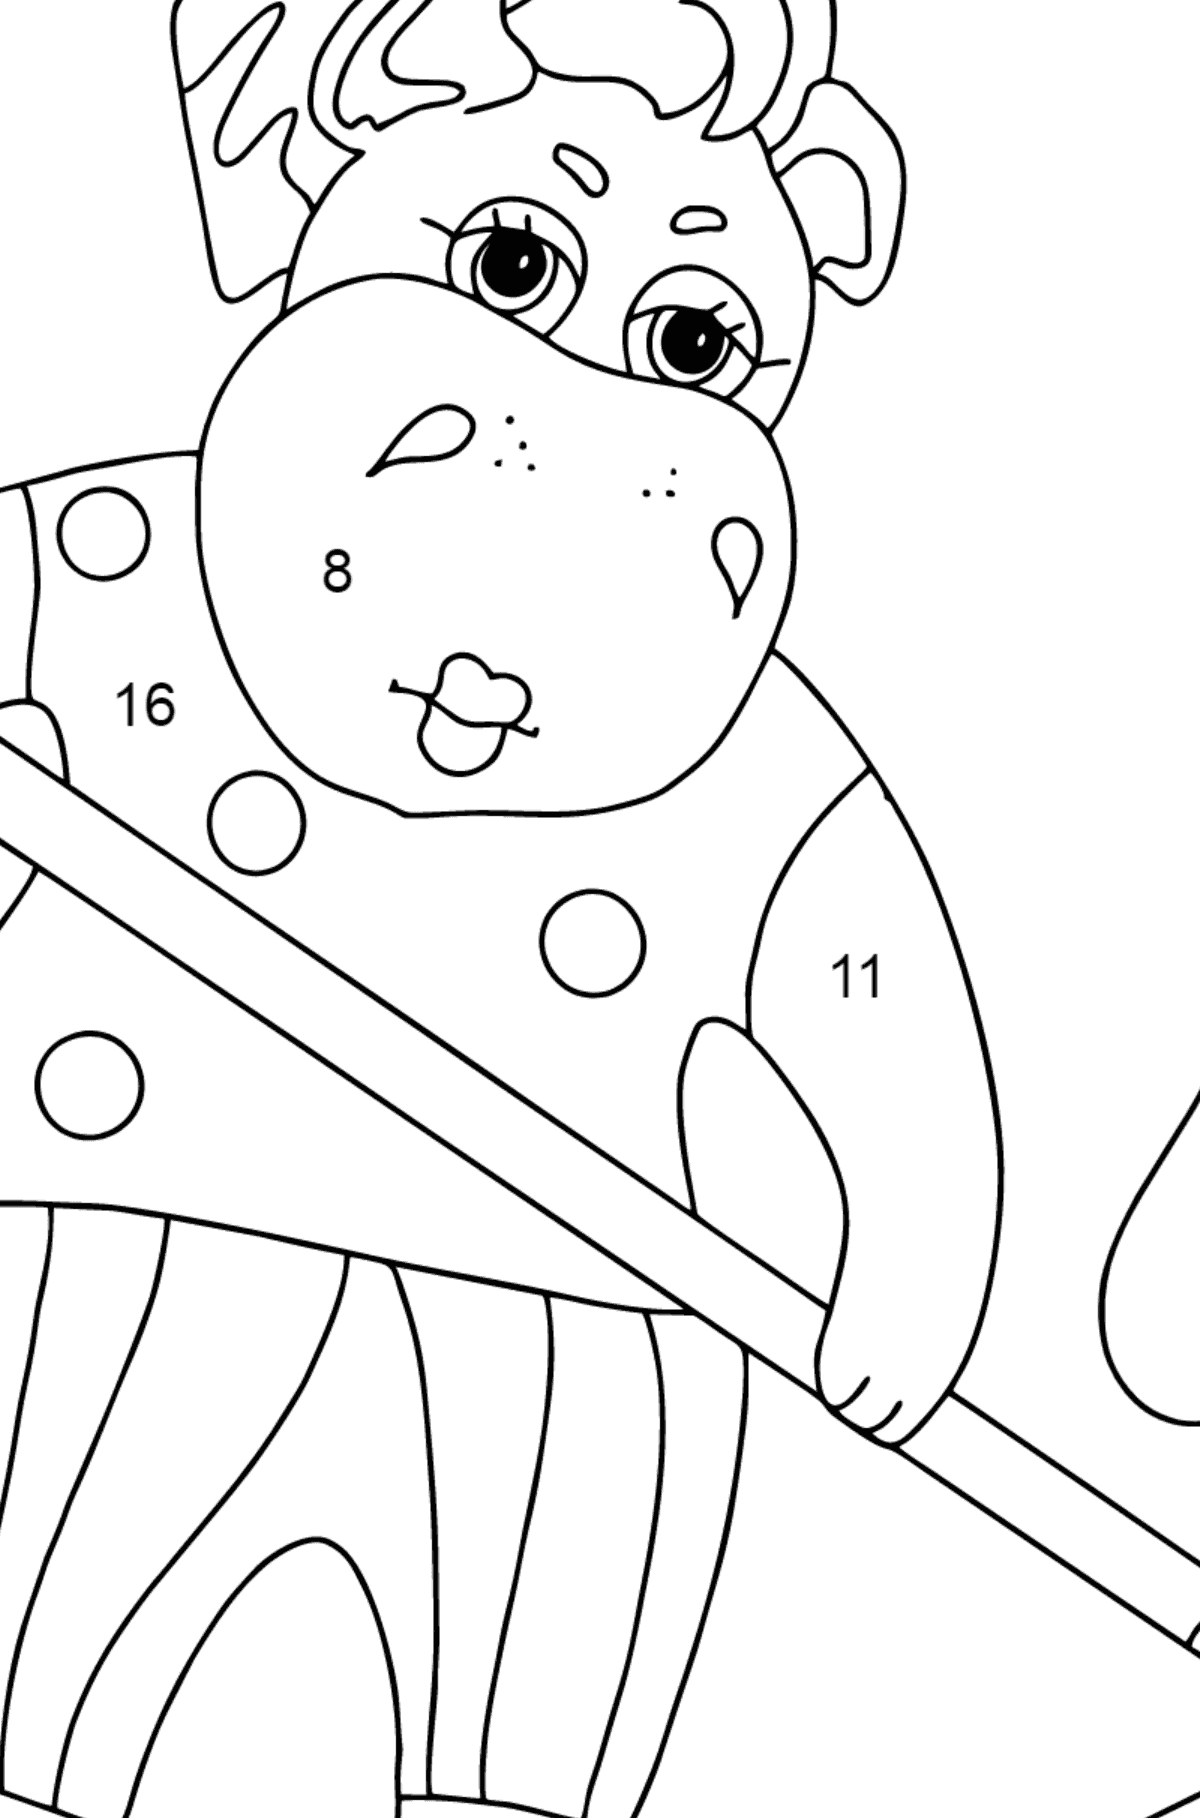 Coloring Page - A Hippo is Collecting Fallen Leaves for Children  - Color by Number